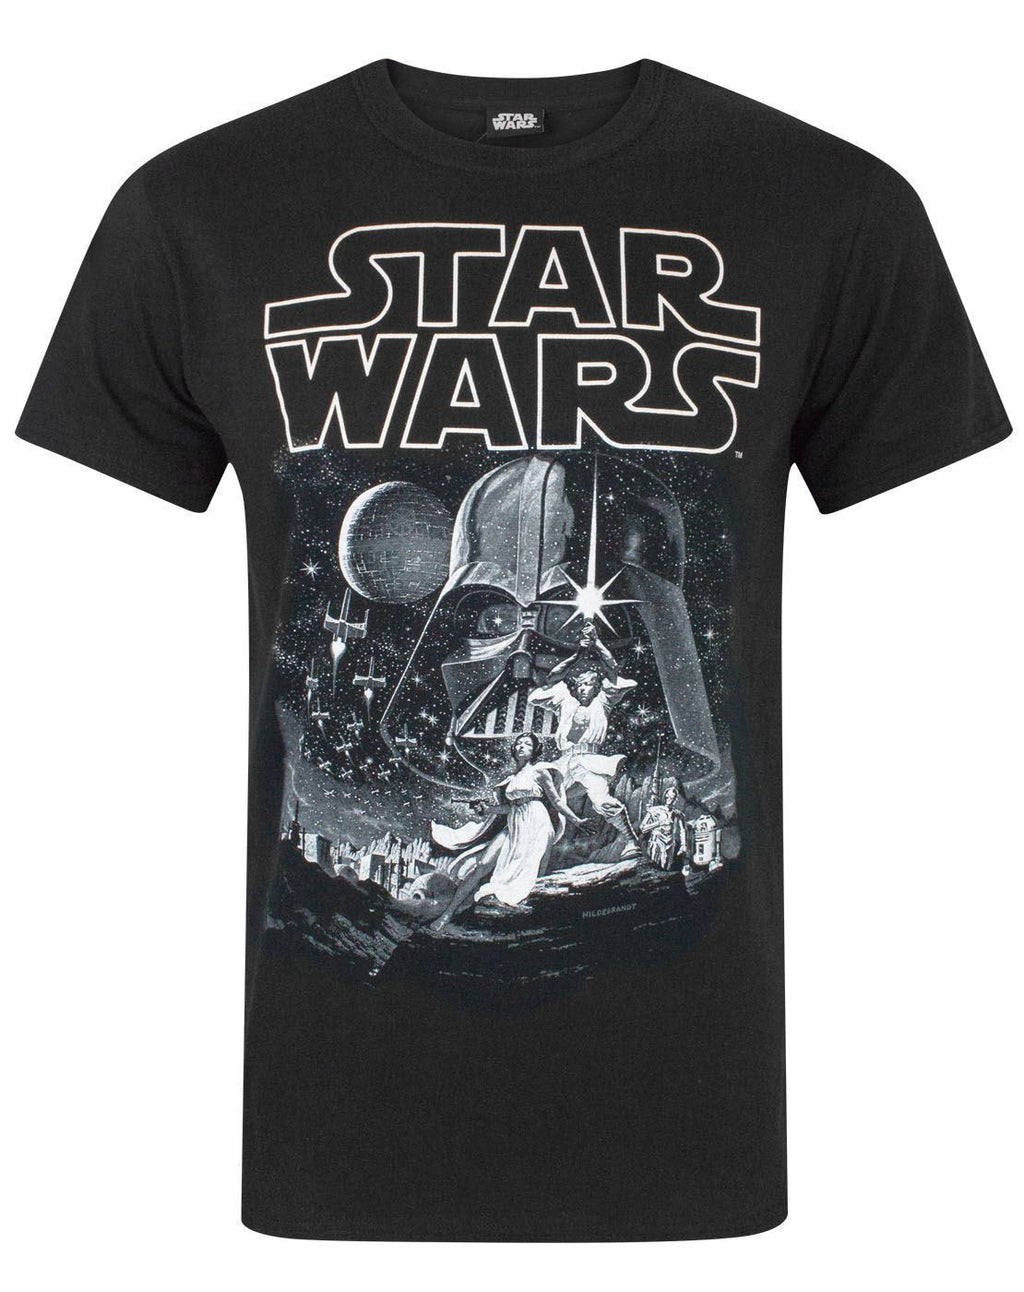 Star Wars A New Hope Poster Men's T-Shirt